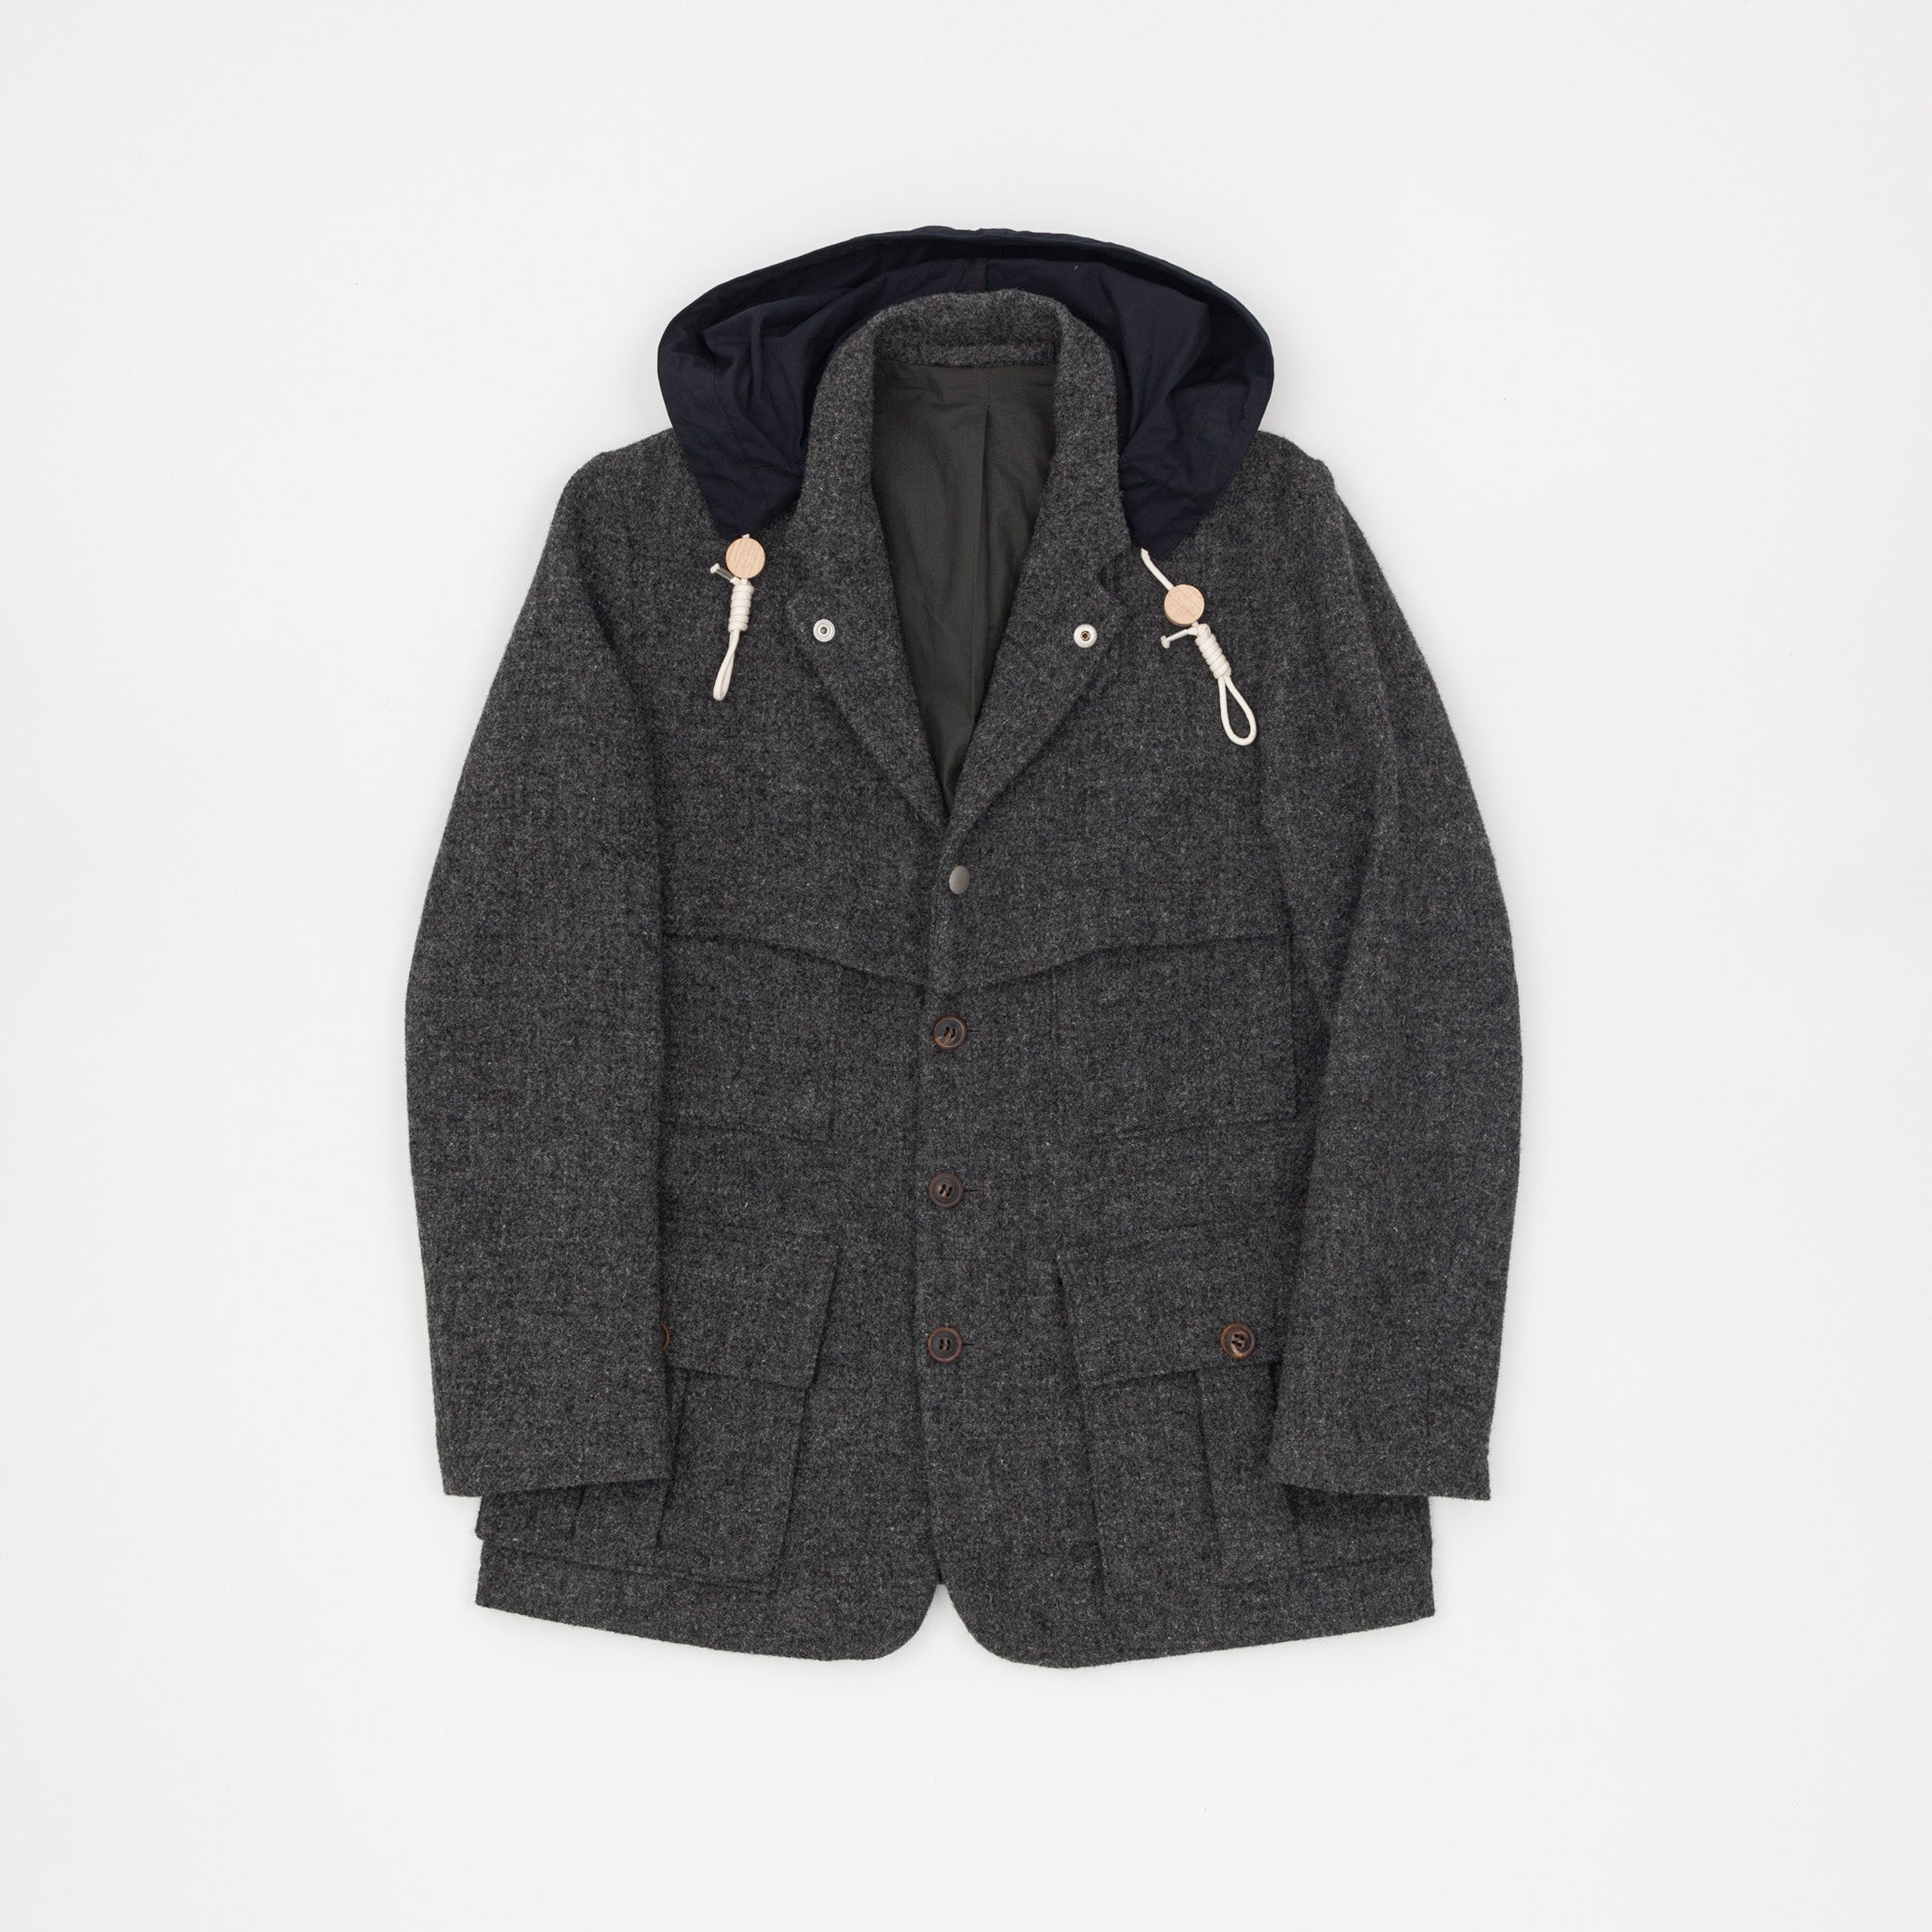 1930's Harris Tweed Ventile Sherpa Jacket